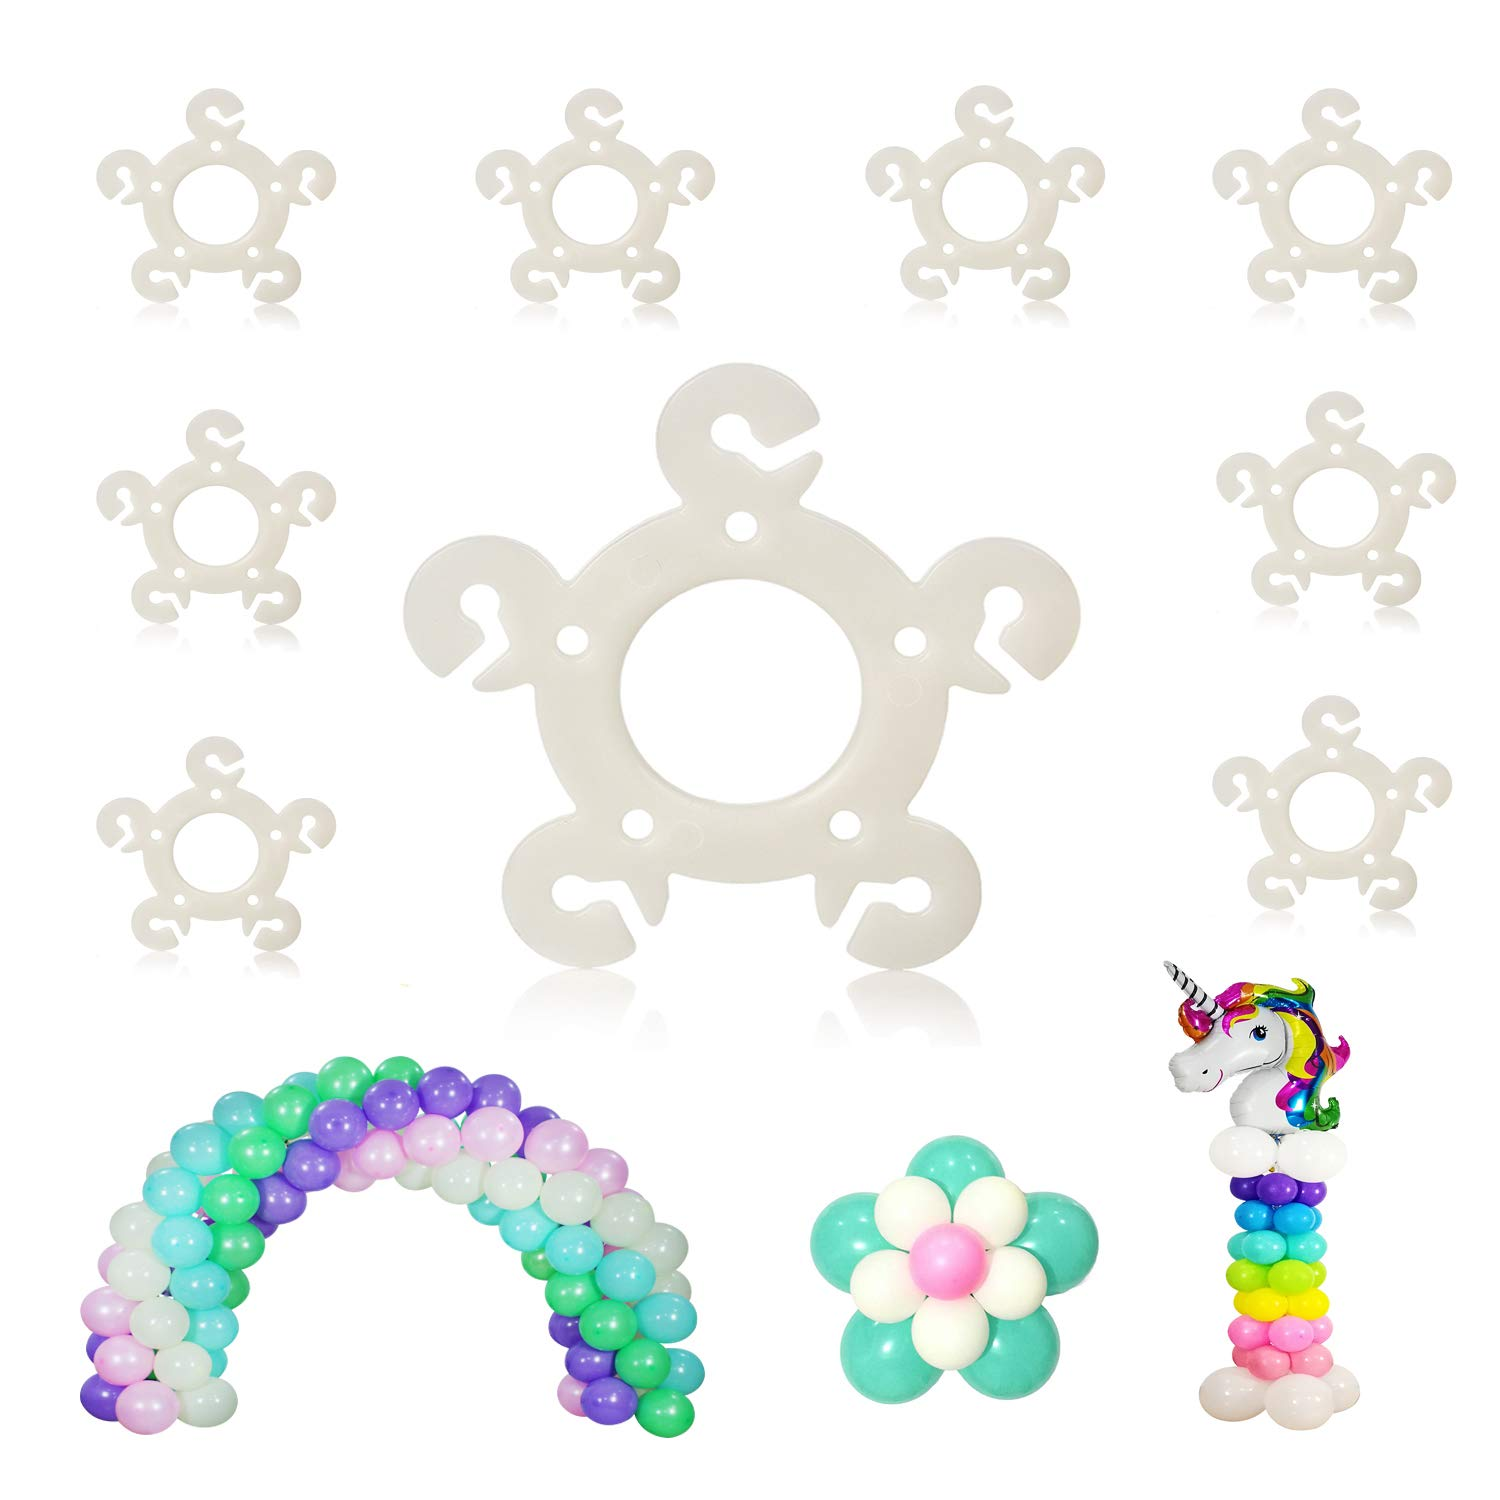 Party Zealot 120 pcs Balloon Clips s for Balloon Arch Balloon Column Stand and Balloon Flowers